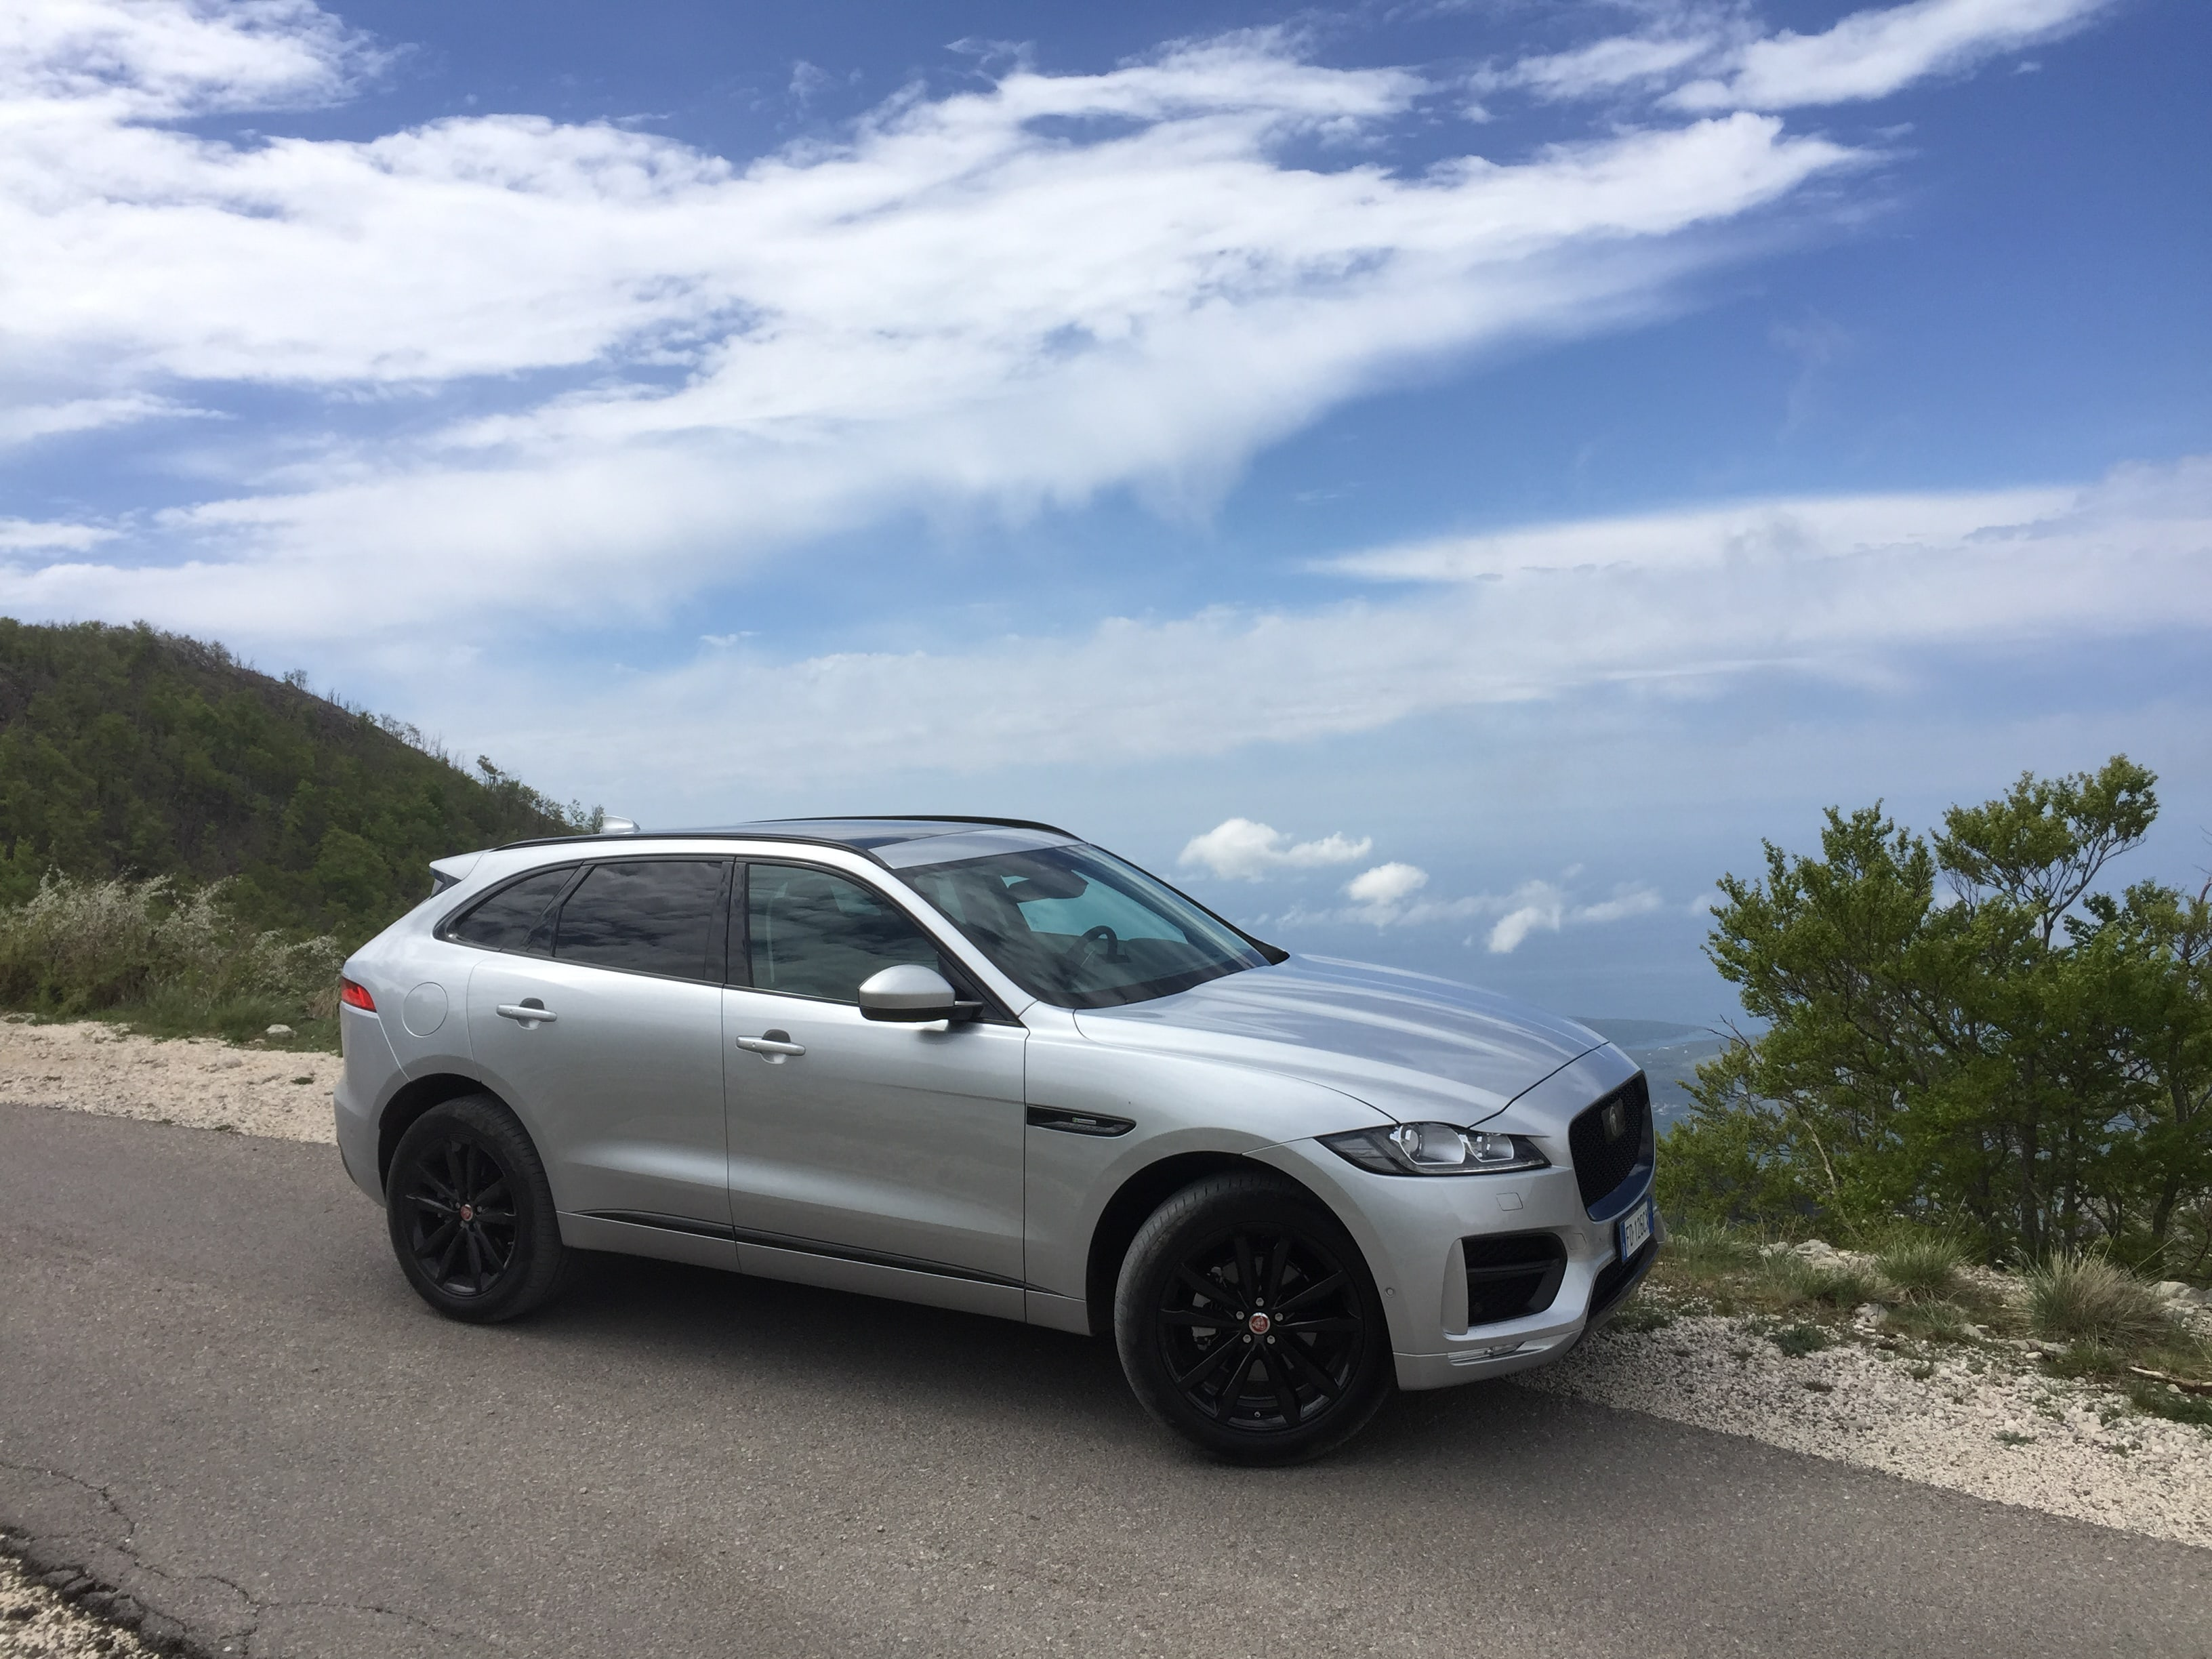 Jaguar F-Pace Wallpapers hd